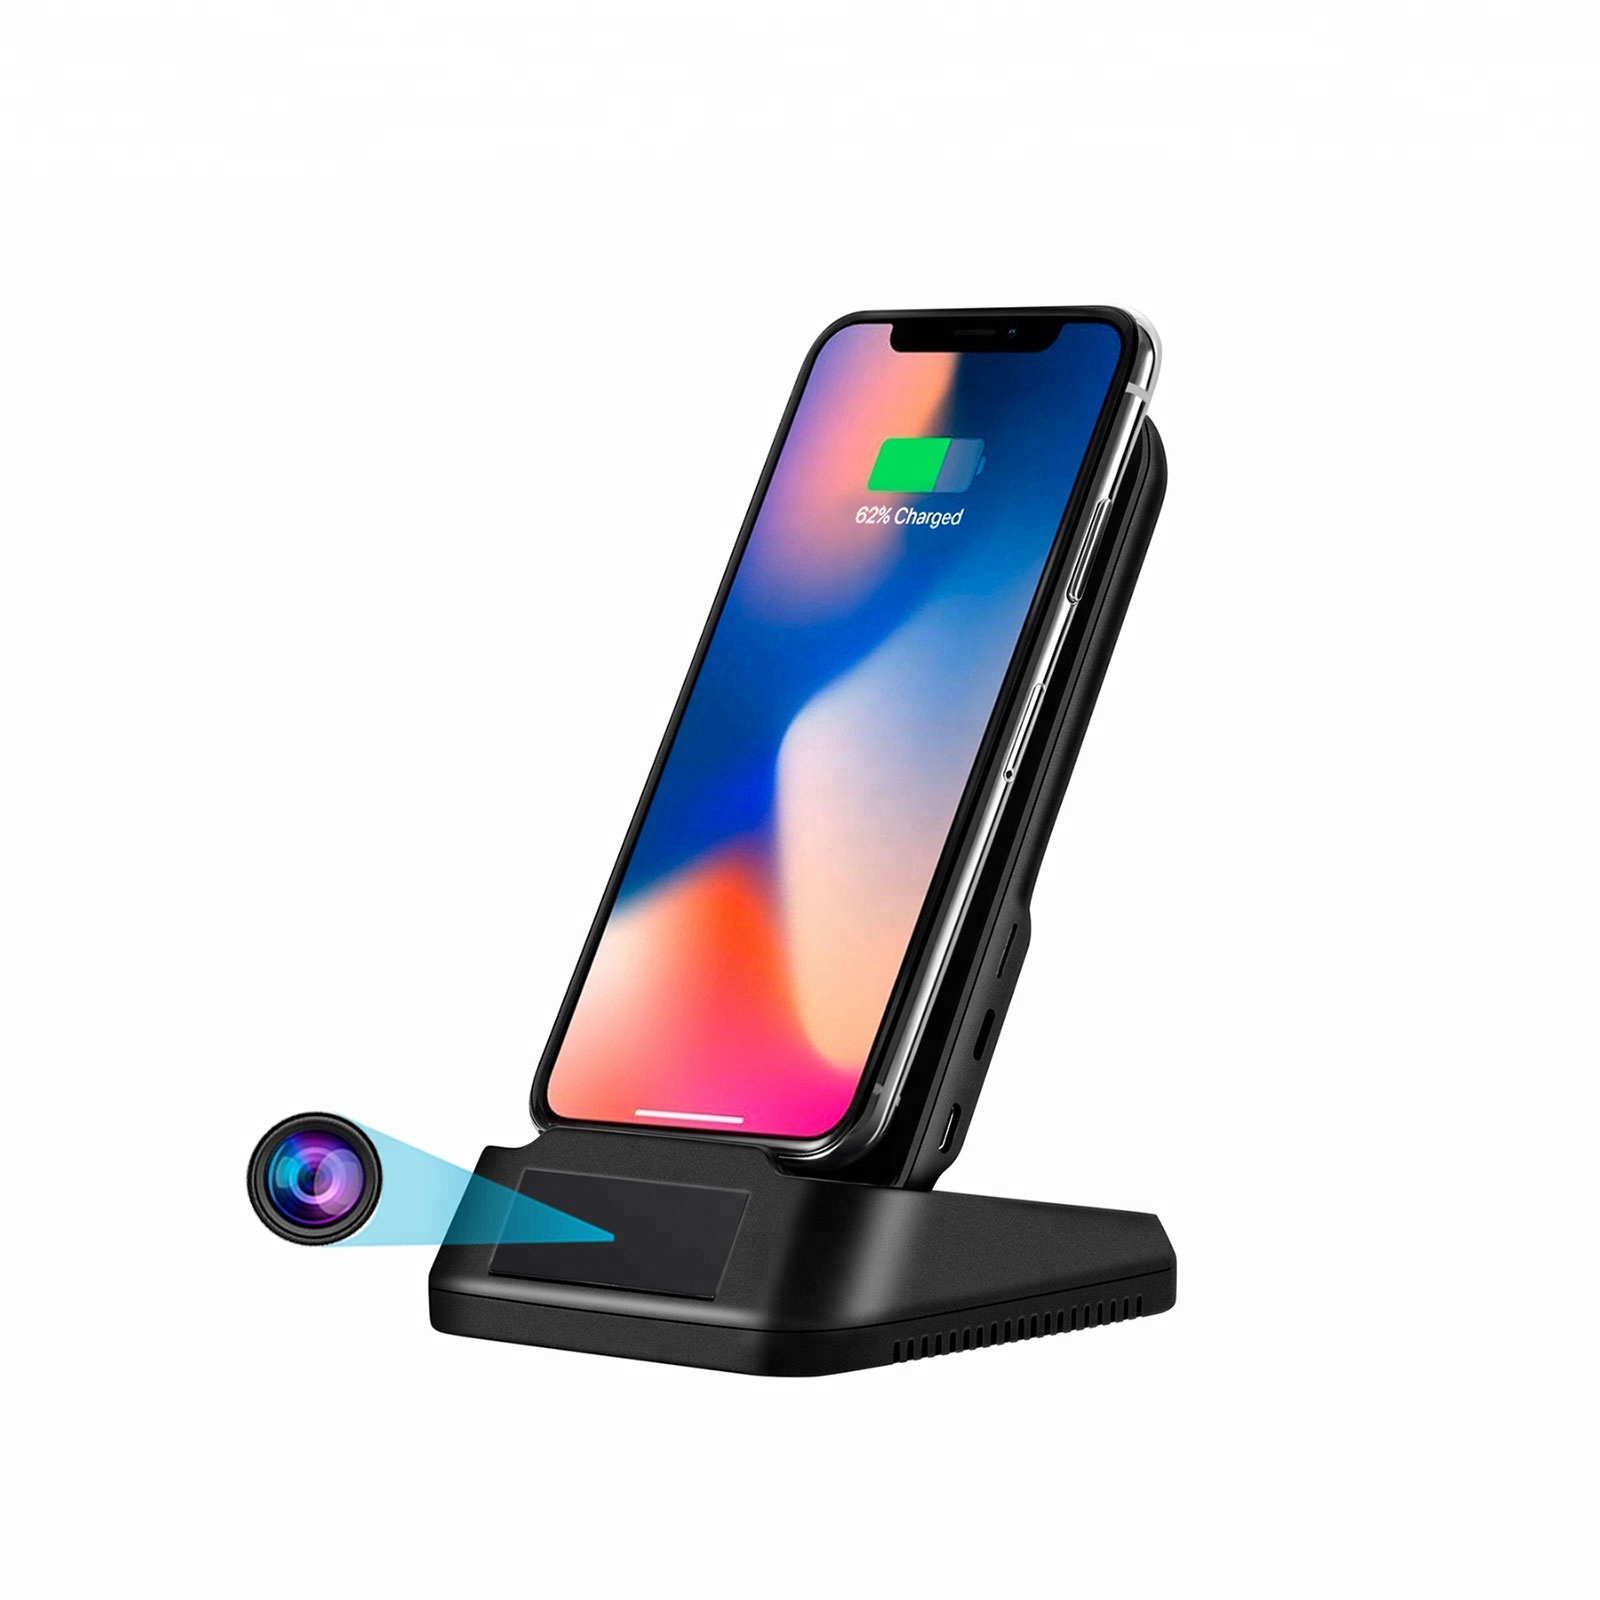 1080p HD <strong>WIFI</strong> Live Streaming Wireless charger Nanny Cam